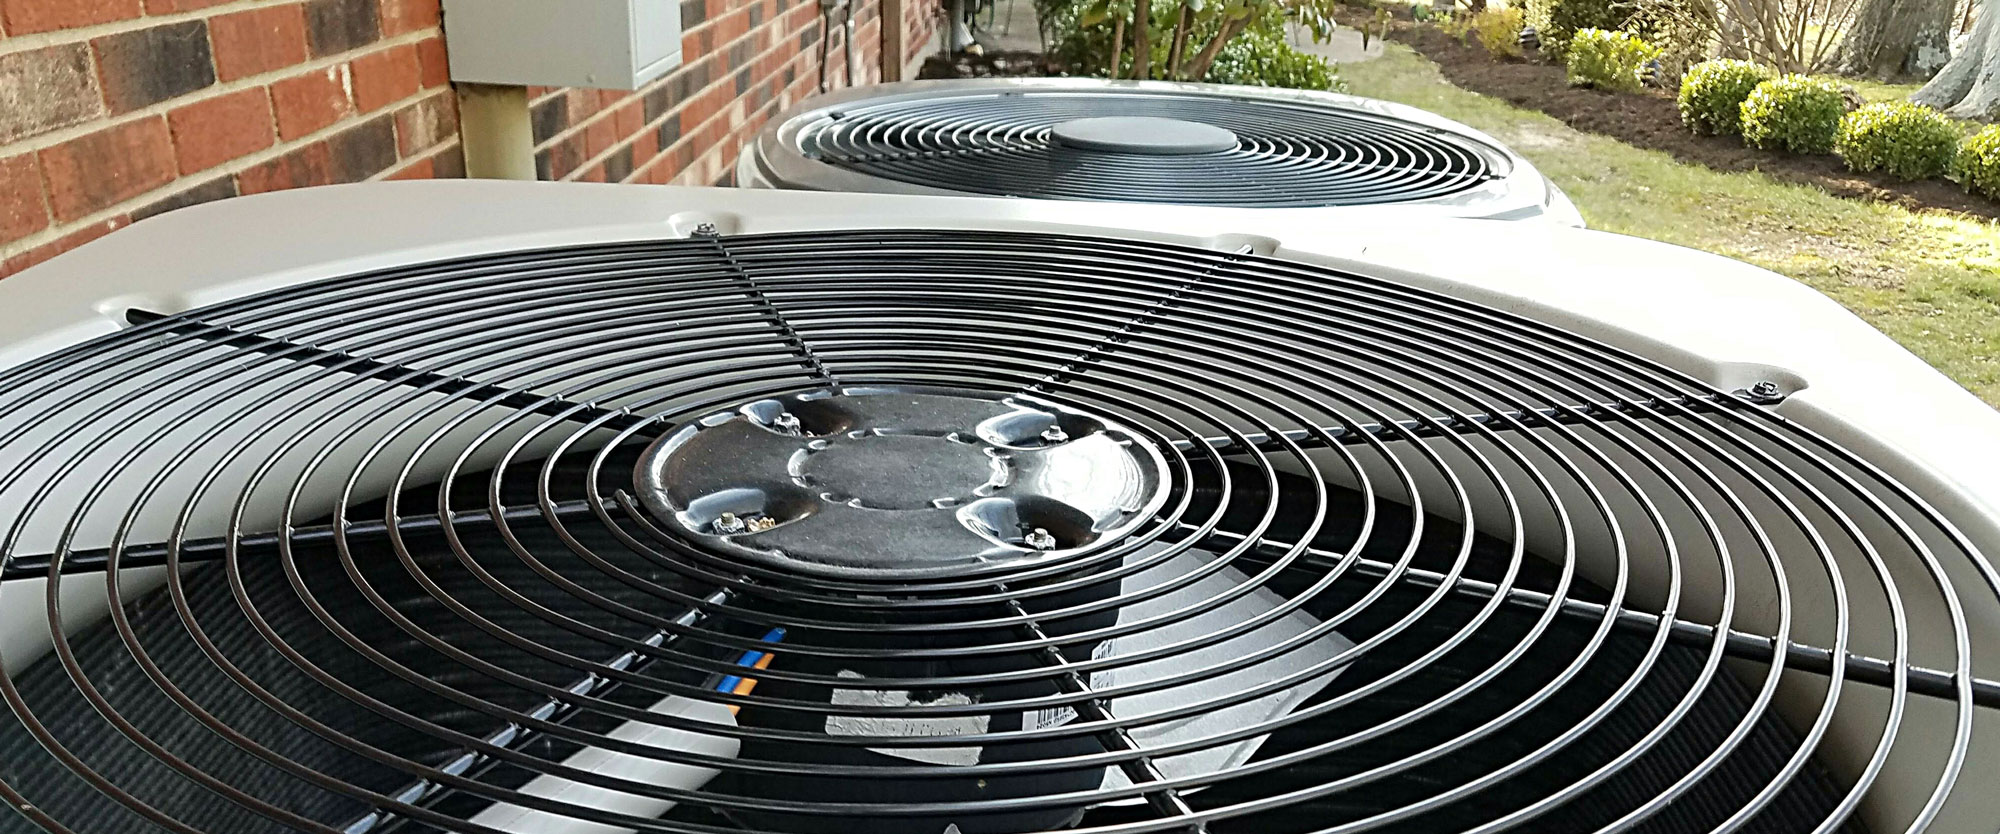 Heating & Cooling Repair in Virginia